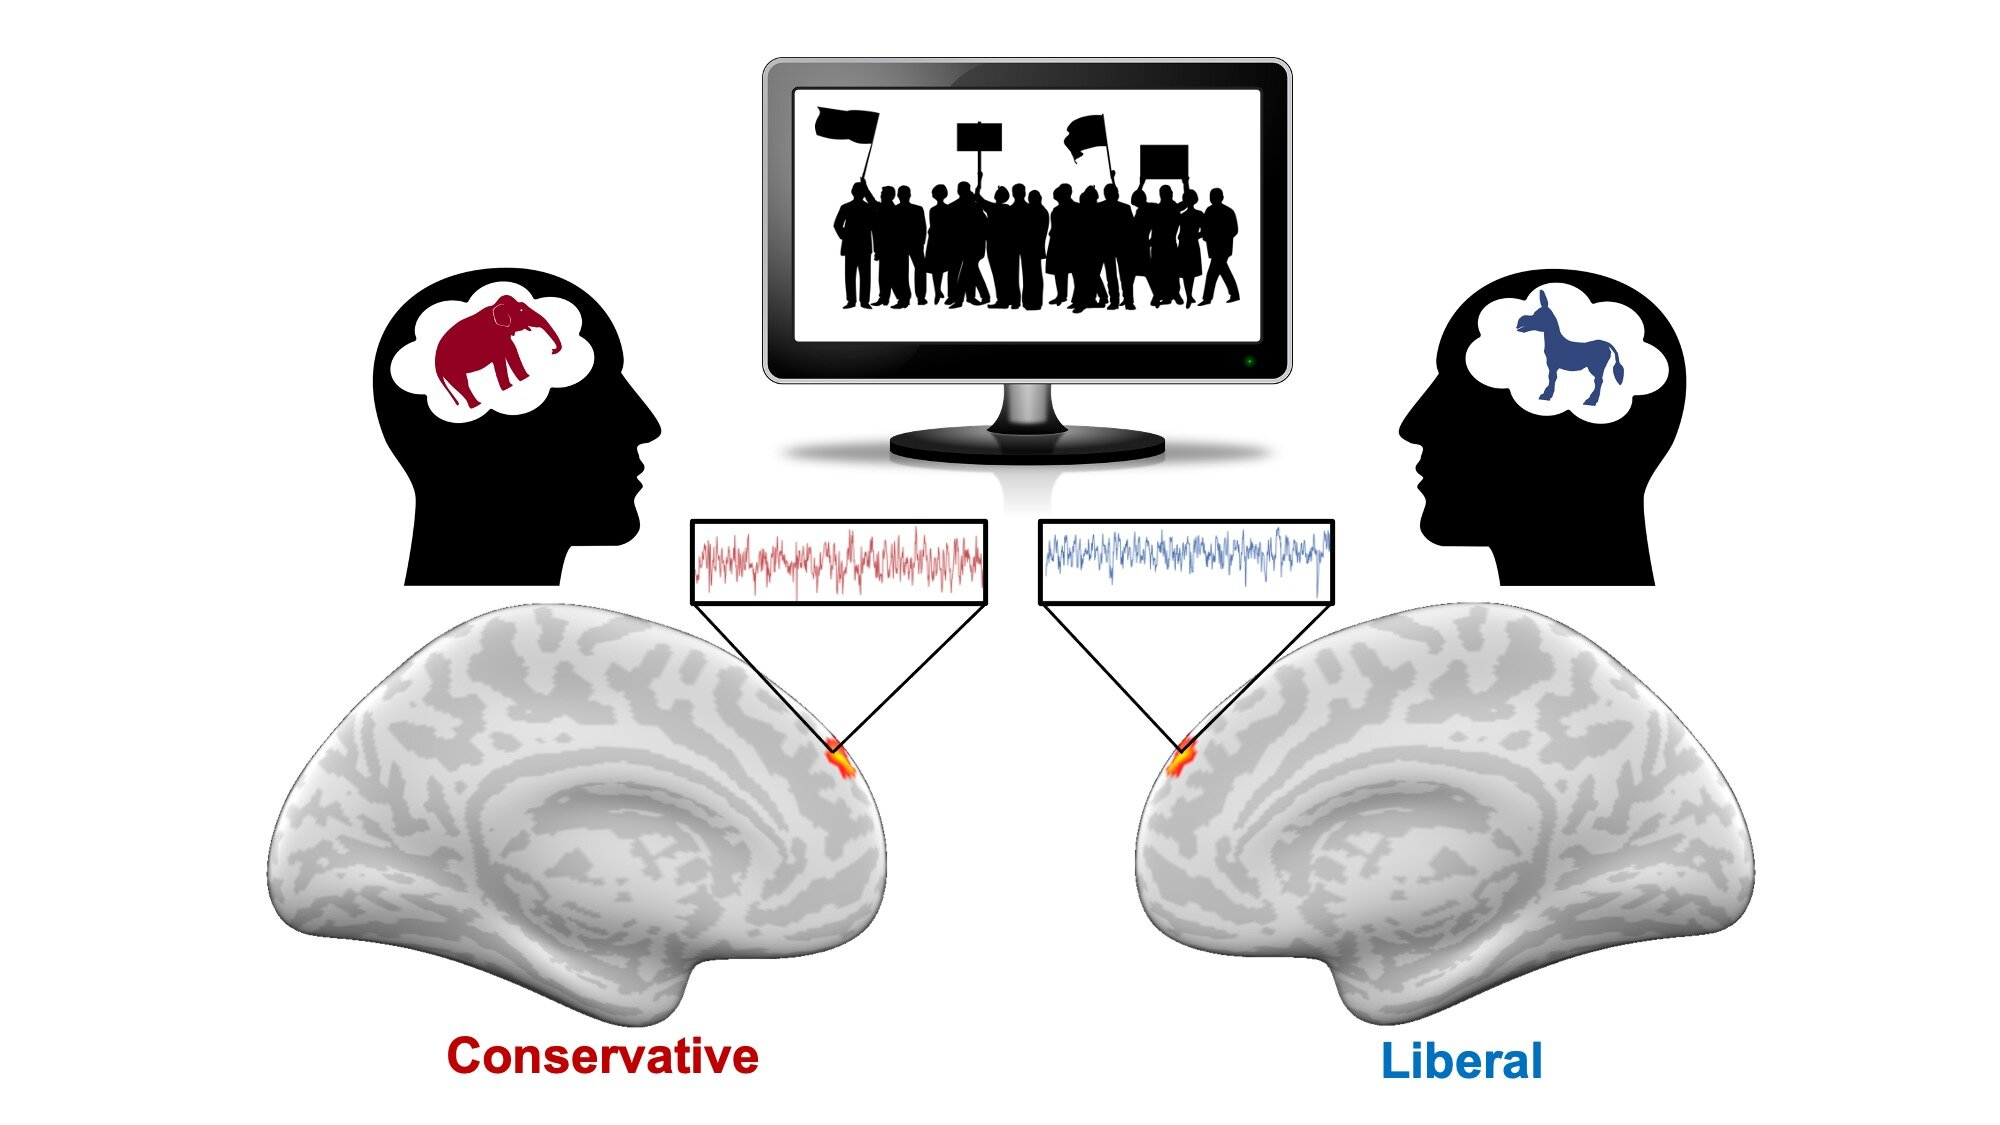 Hot-button words trigger conservatives and liberals differently